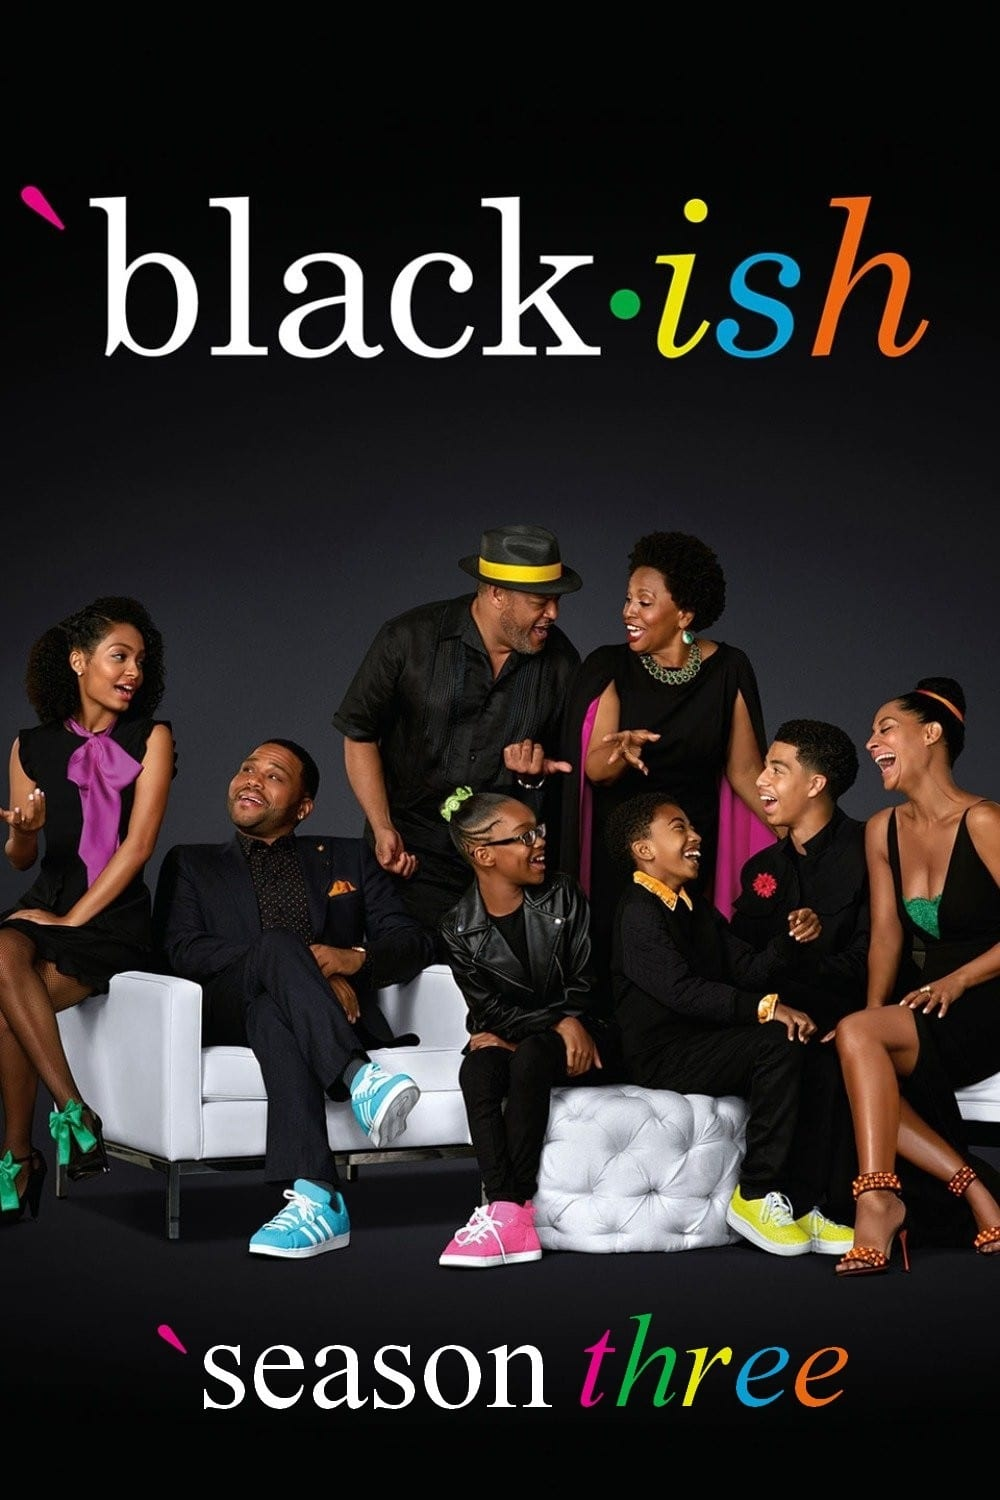 black-ish Season 3